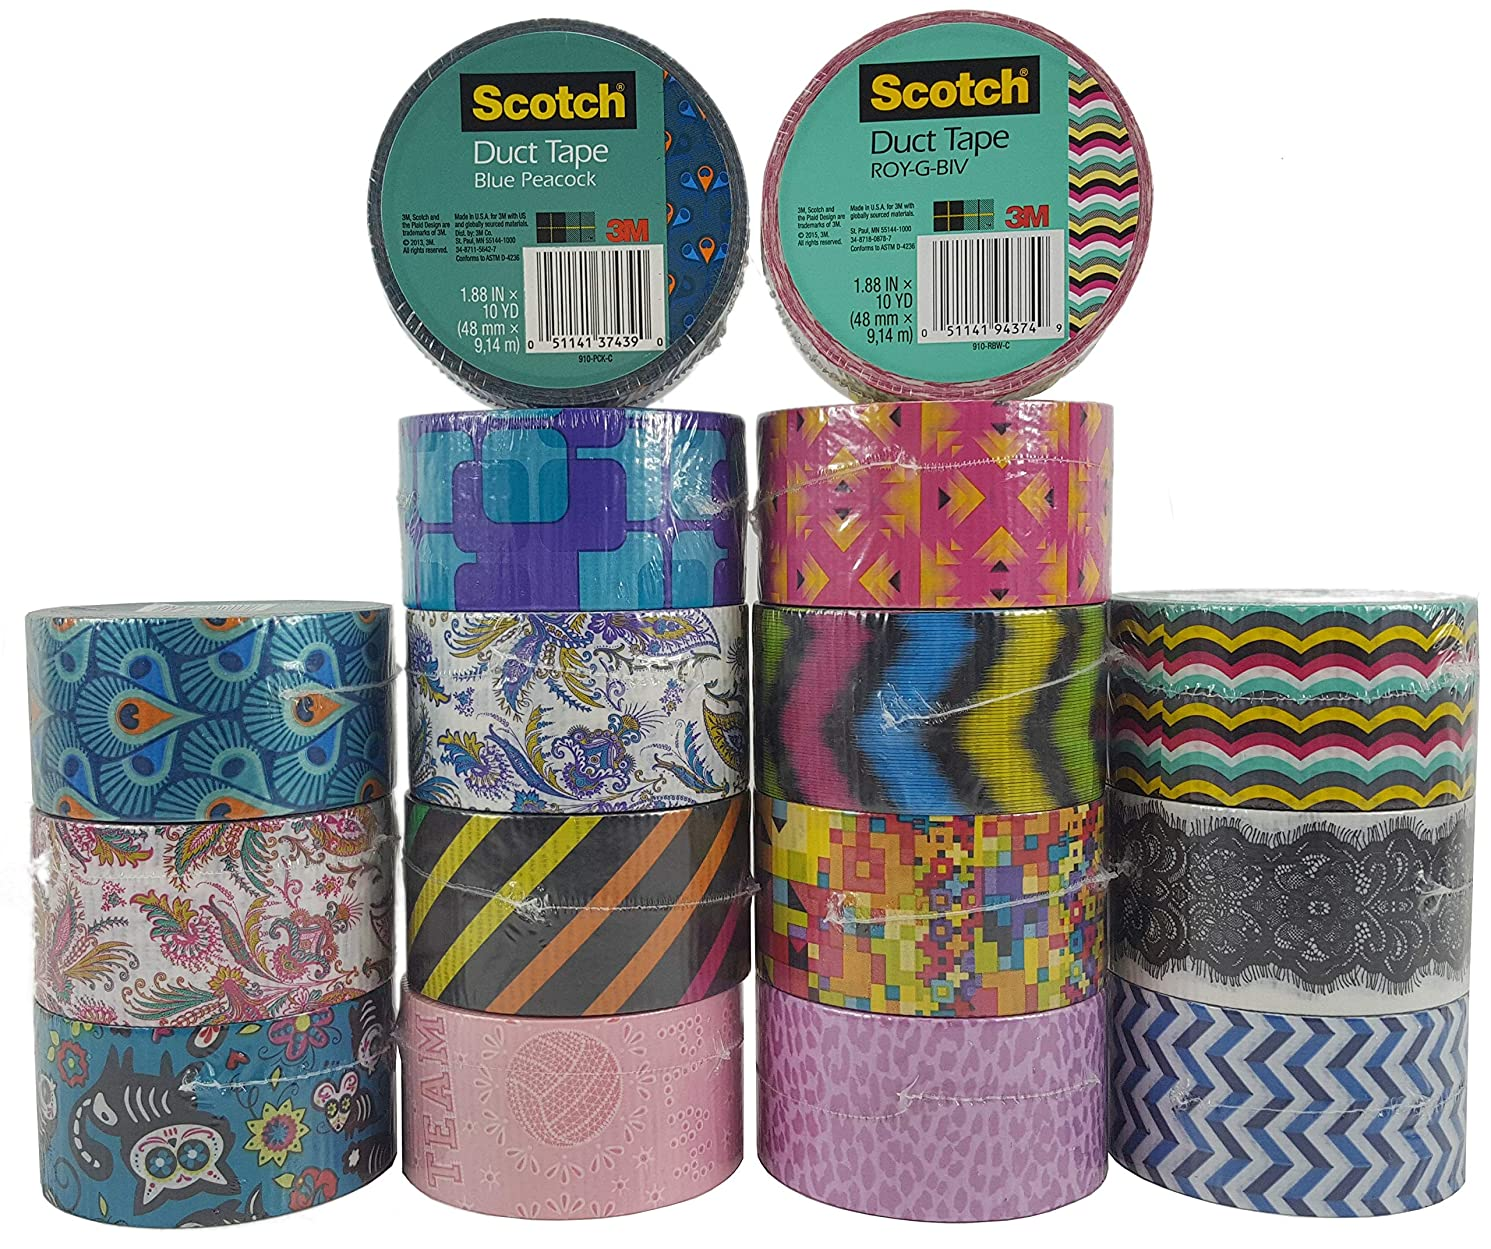 Scotch Brand Duct Tape Set (16 Assorted Rolls) Colored Duct Tape Variety Pack, Duct Tape Bulk Lot for Duct Tape Designs, DIY Crafts